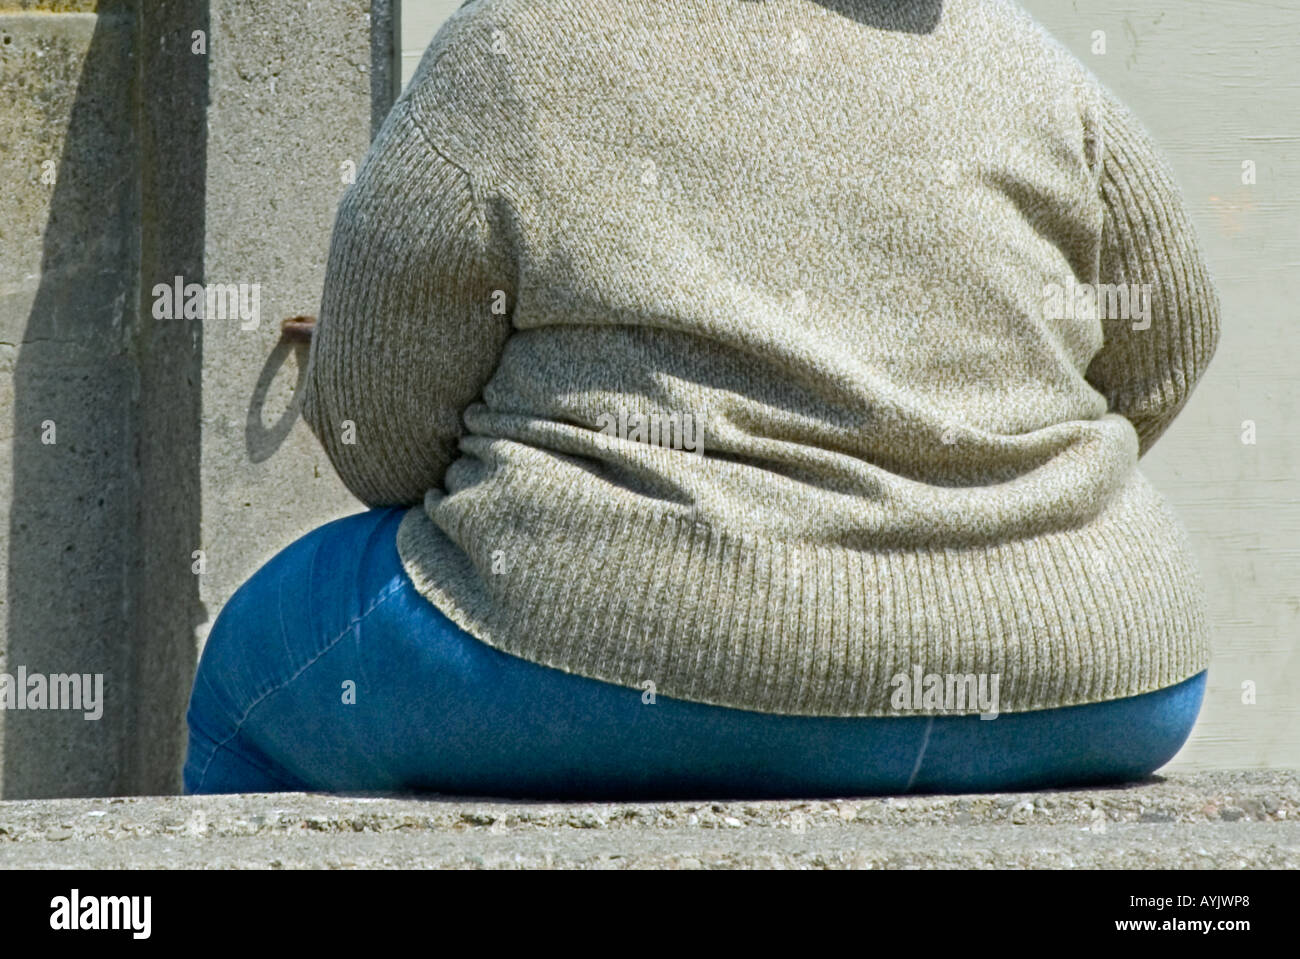 close up of woman with a large butt illustrating results eating too